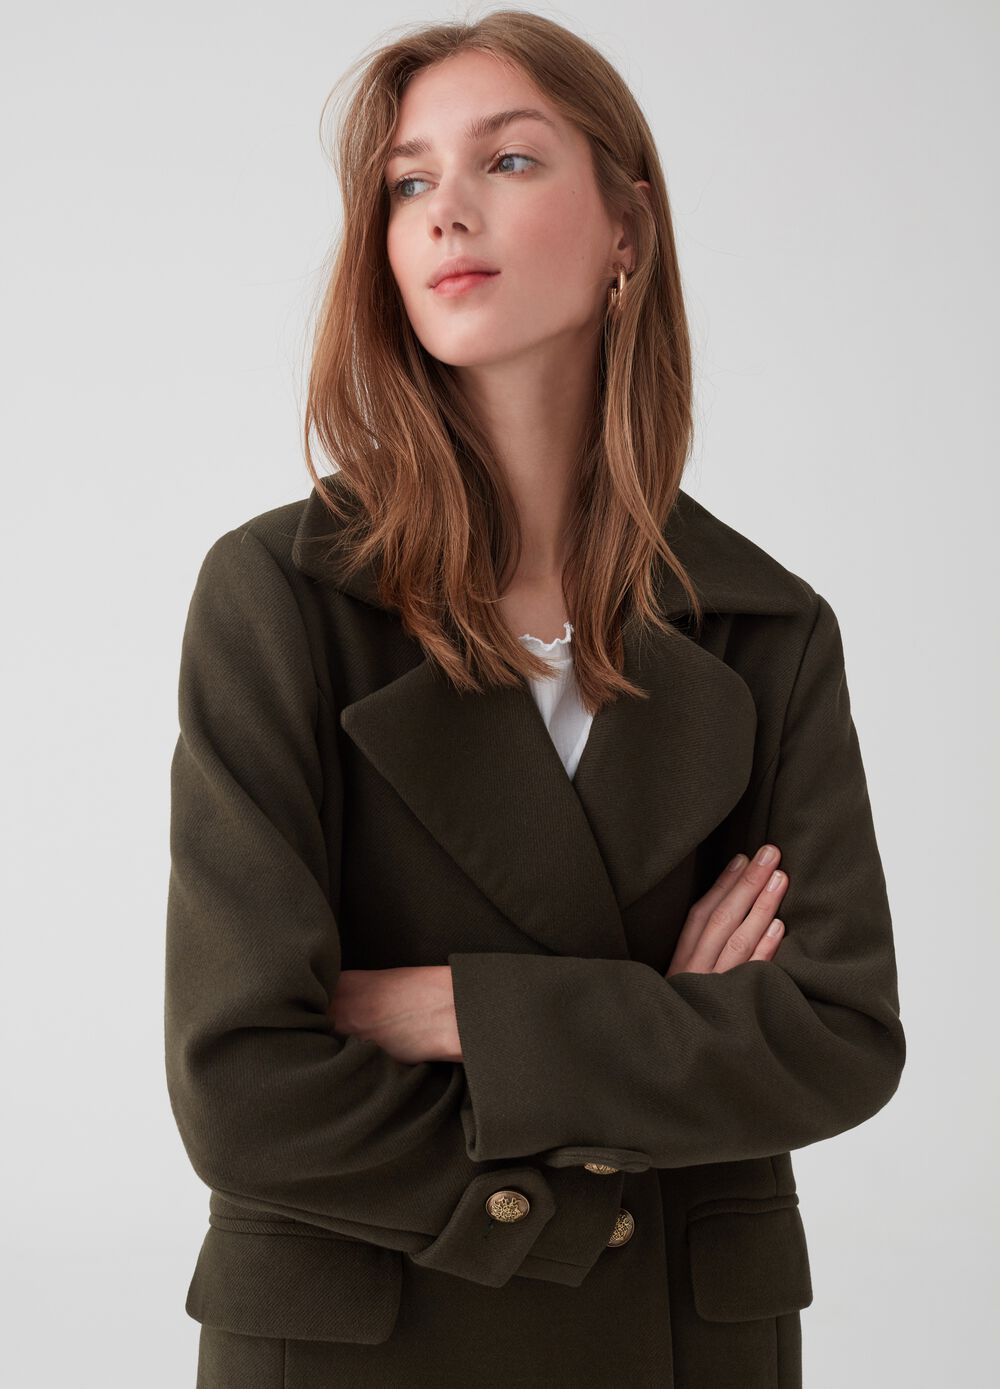 Long coat with lapels, pockets and buttons